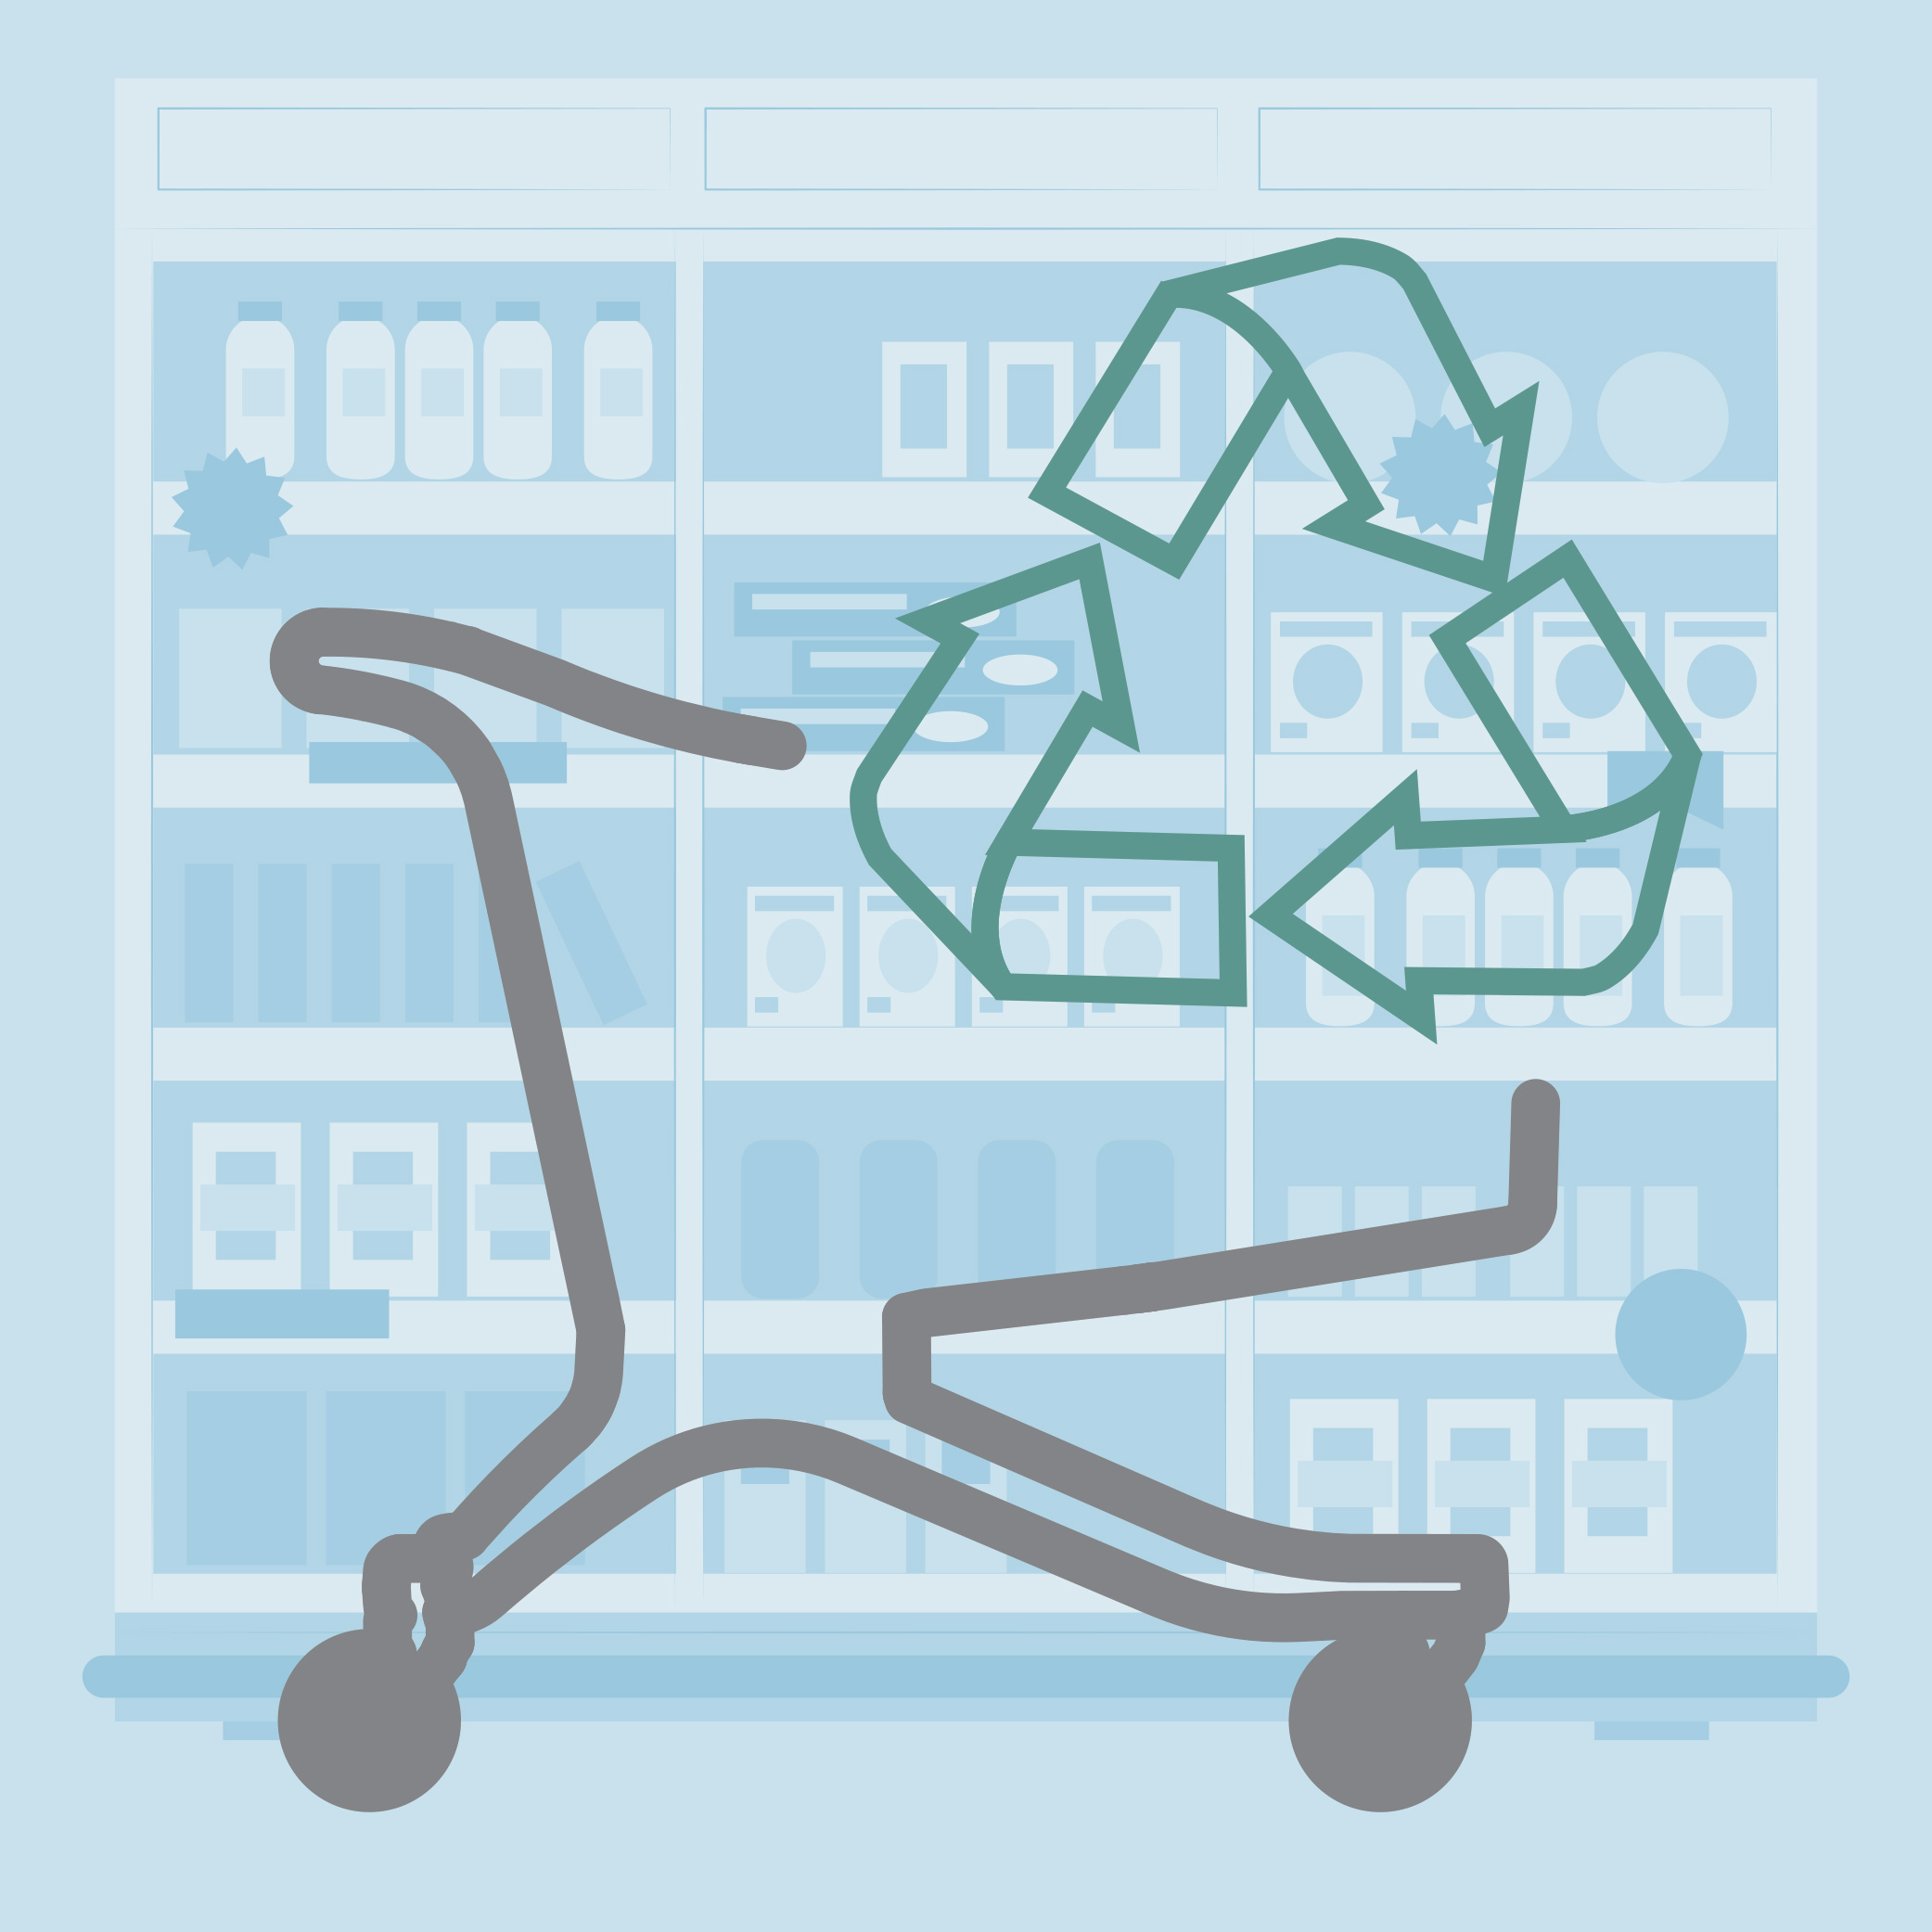 Do you want to be a sustainable supermarket? Polycart proposes the use of an ecological supermarket cart